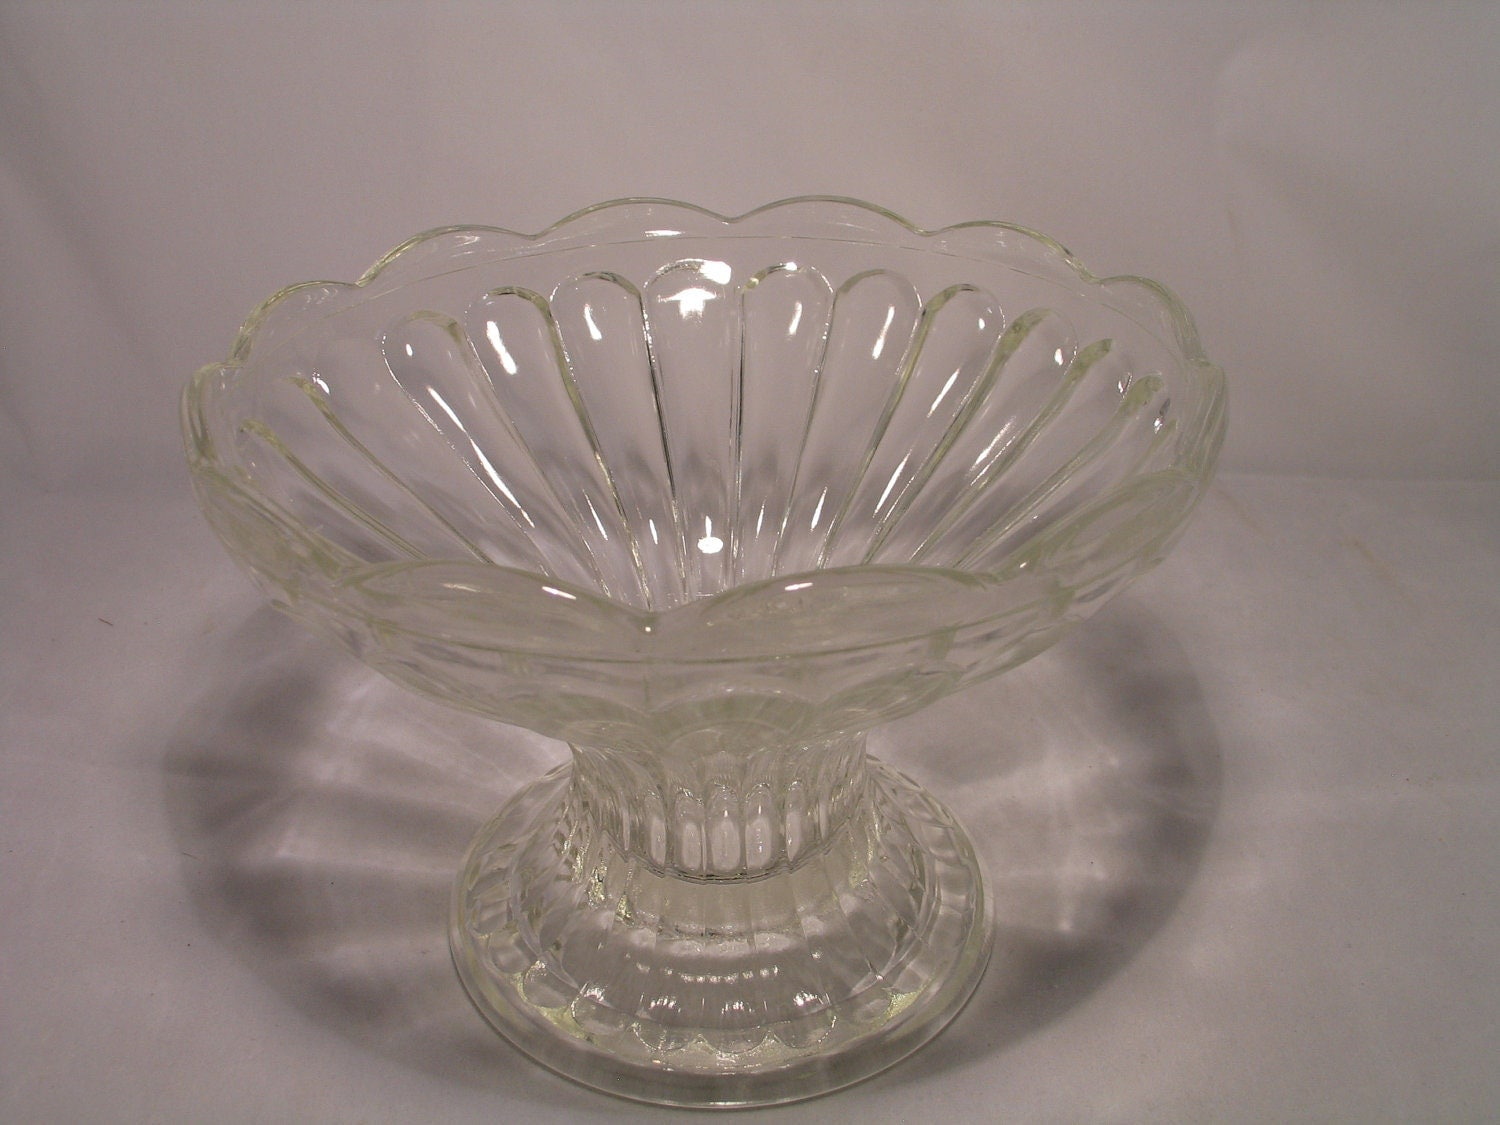 how to clean a glass bowl